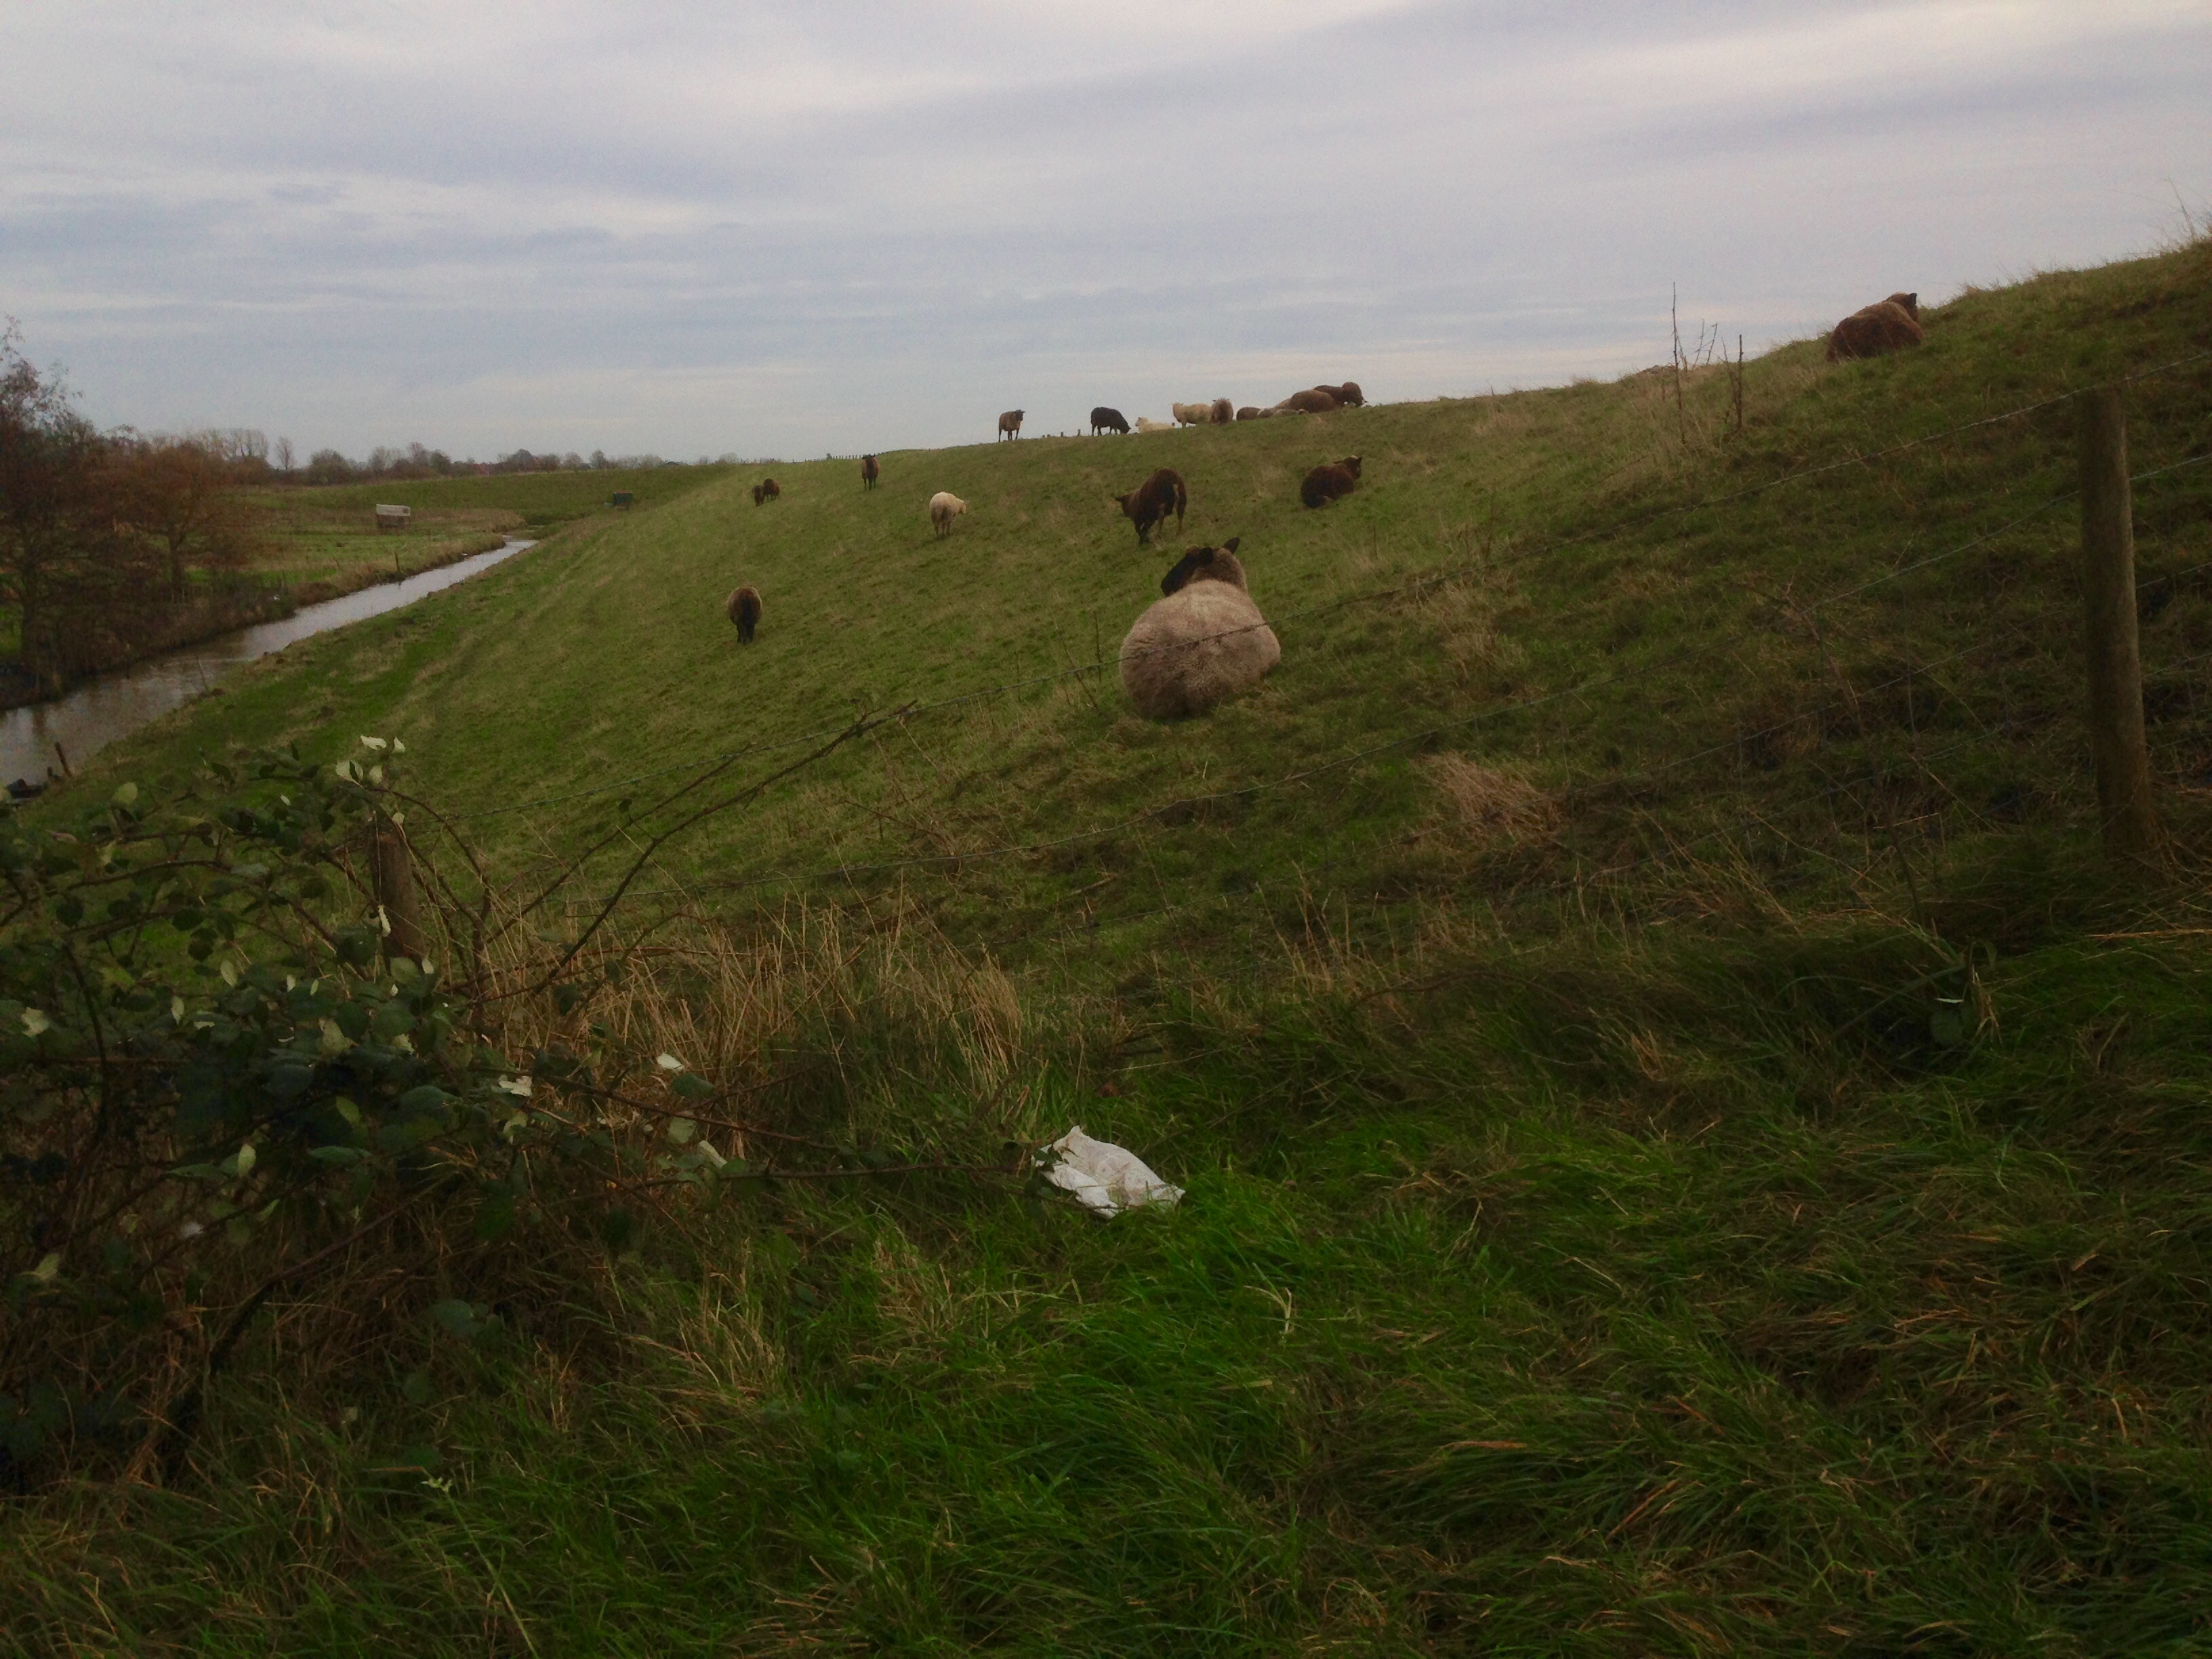 The sheep alongside the dike were more interested in staying out of the wind than chatting with foreigners.